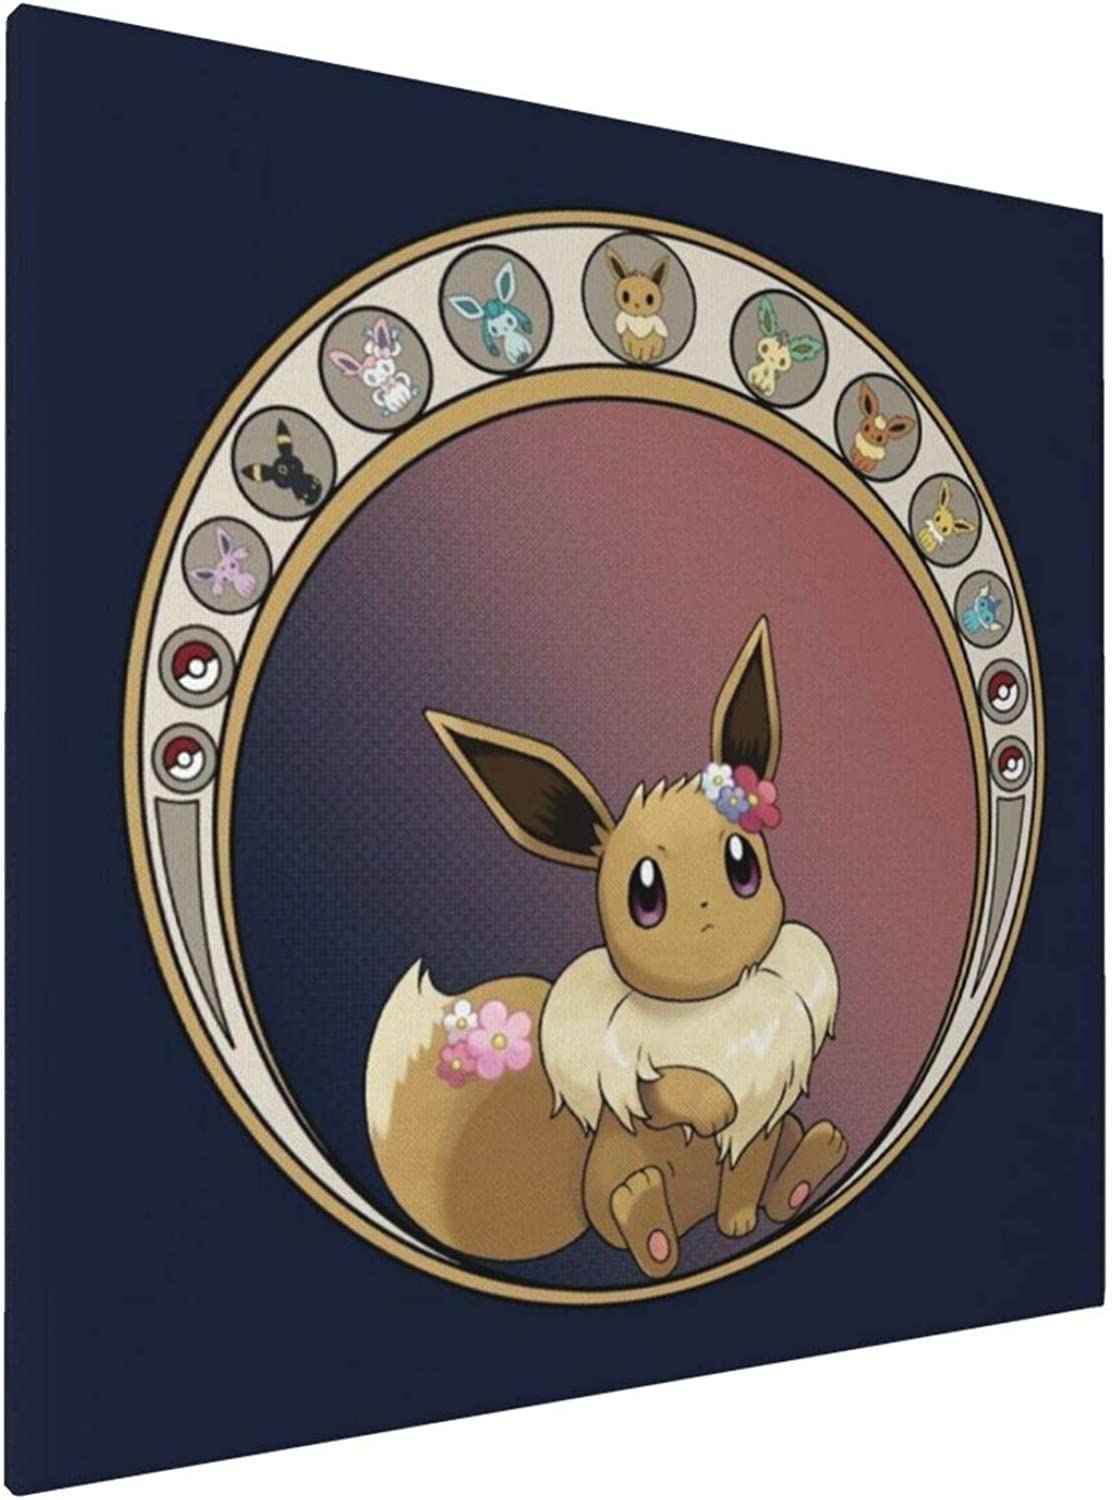 1007 Canvas Prints Wall Art Paintings(20x20in) Monster of The Pocket Eeveelution Circle Pictures Home Office Decor Framed Posters & Prints